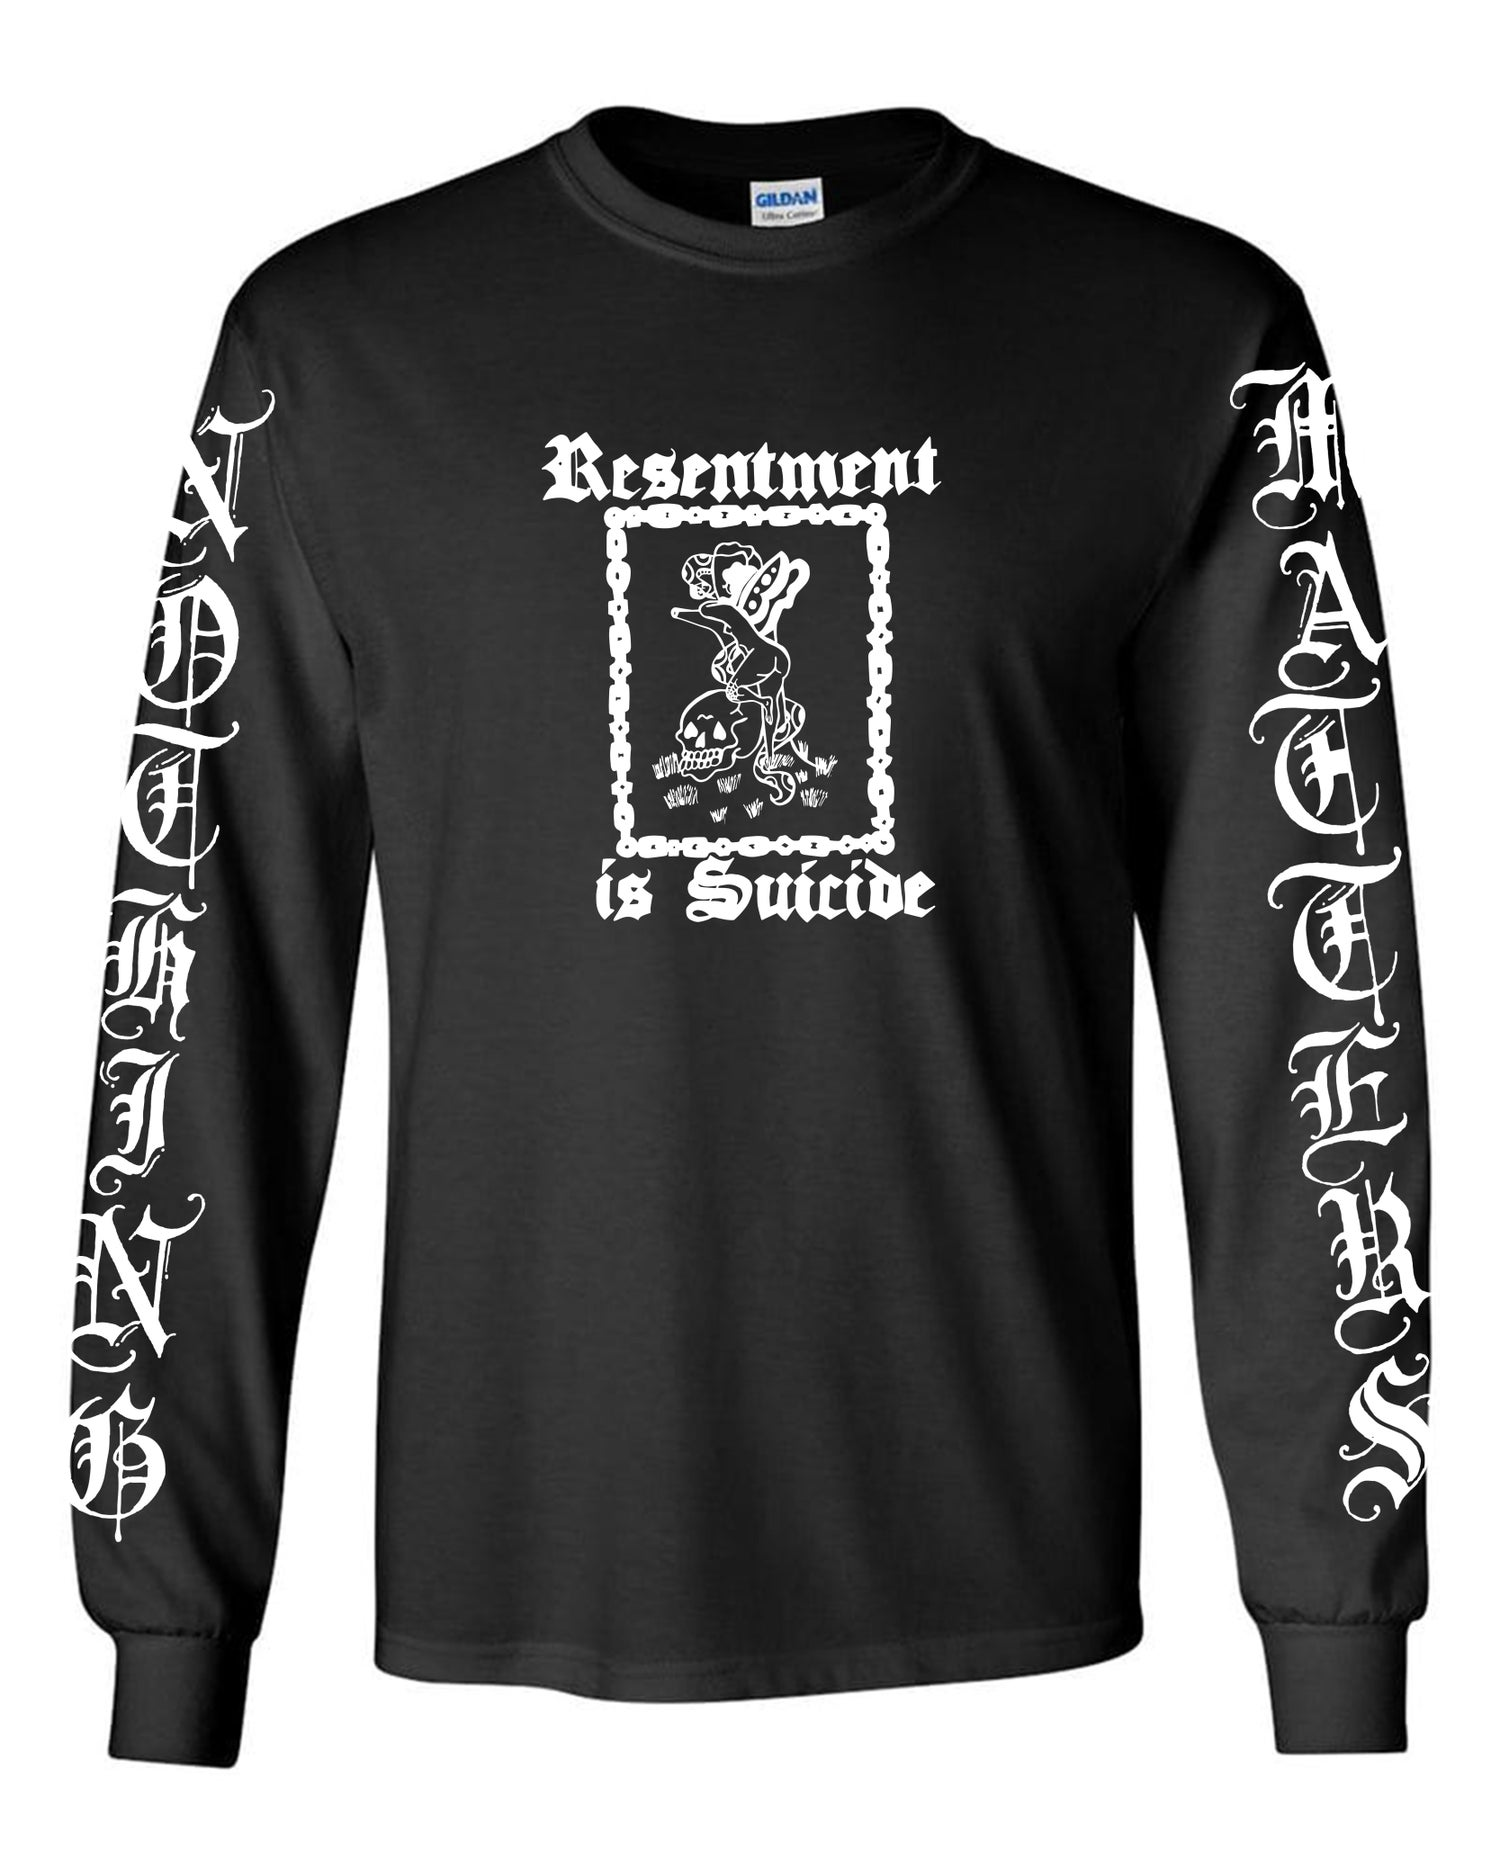 Image of Resentment is Suicide / Nothing Matters Long sleeve